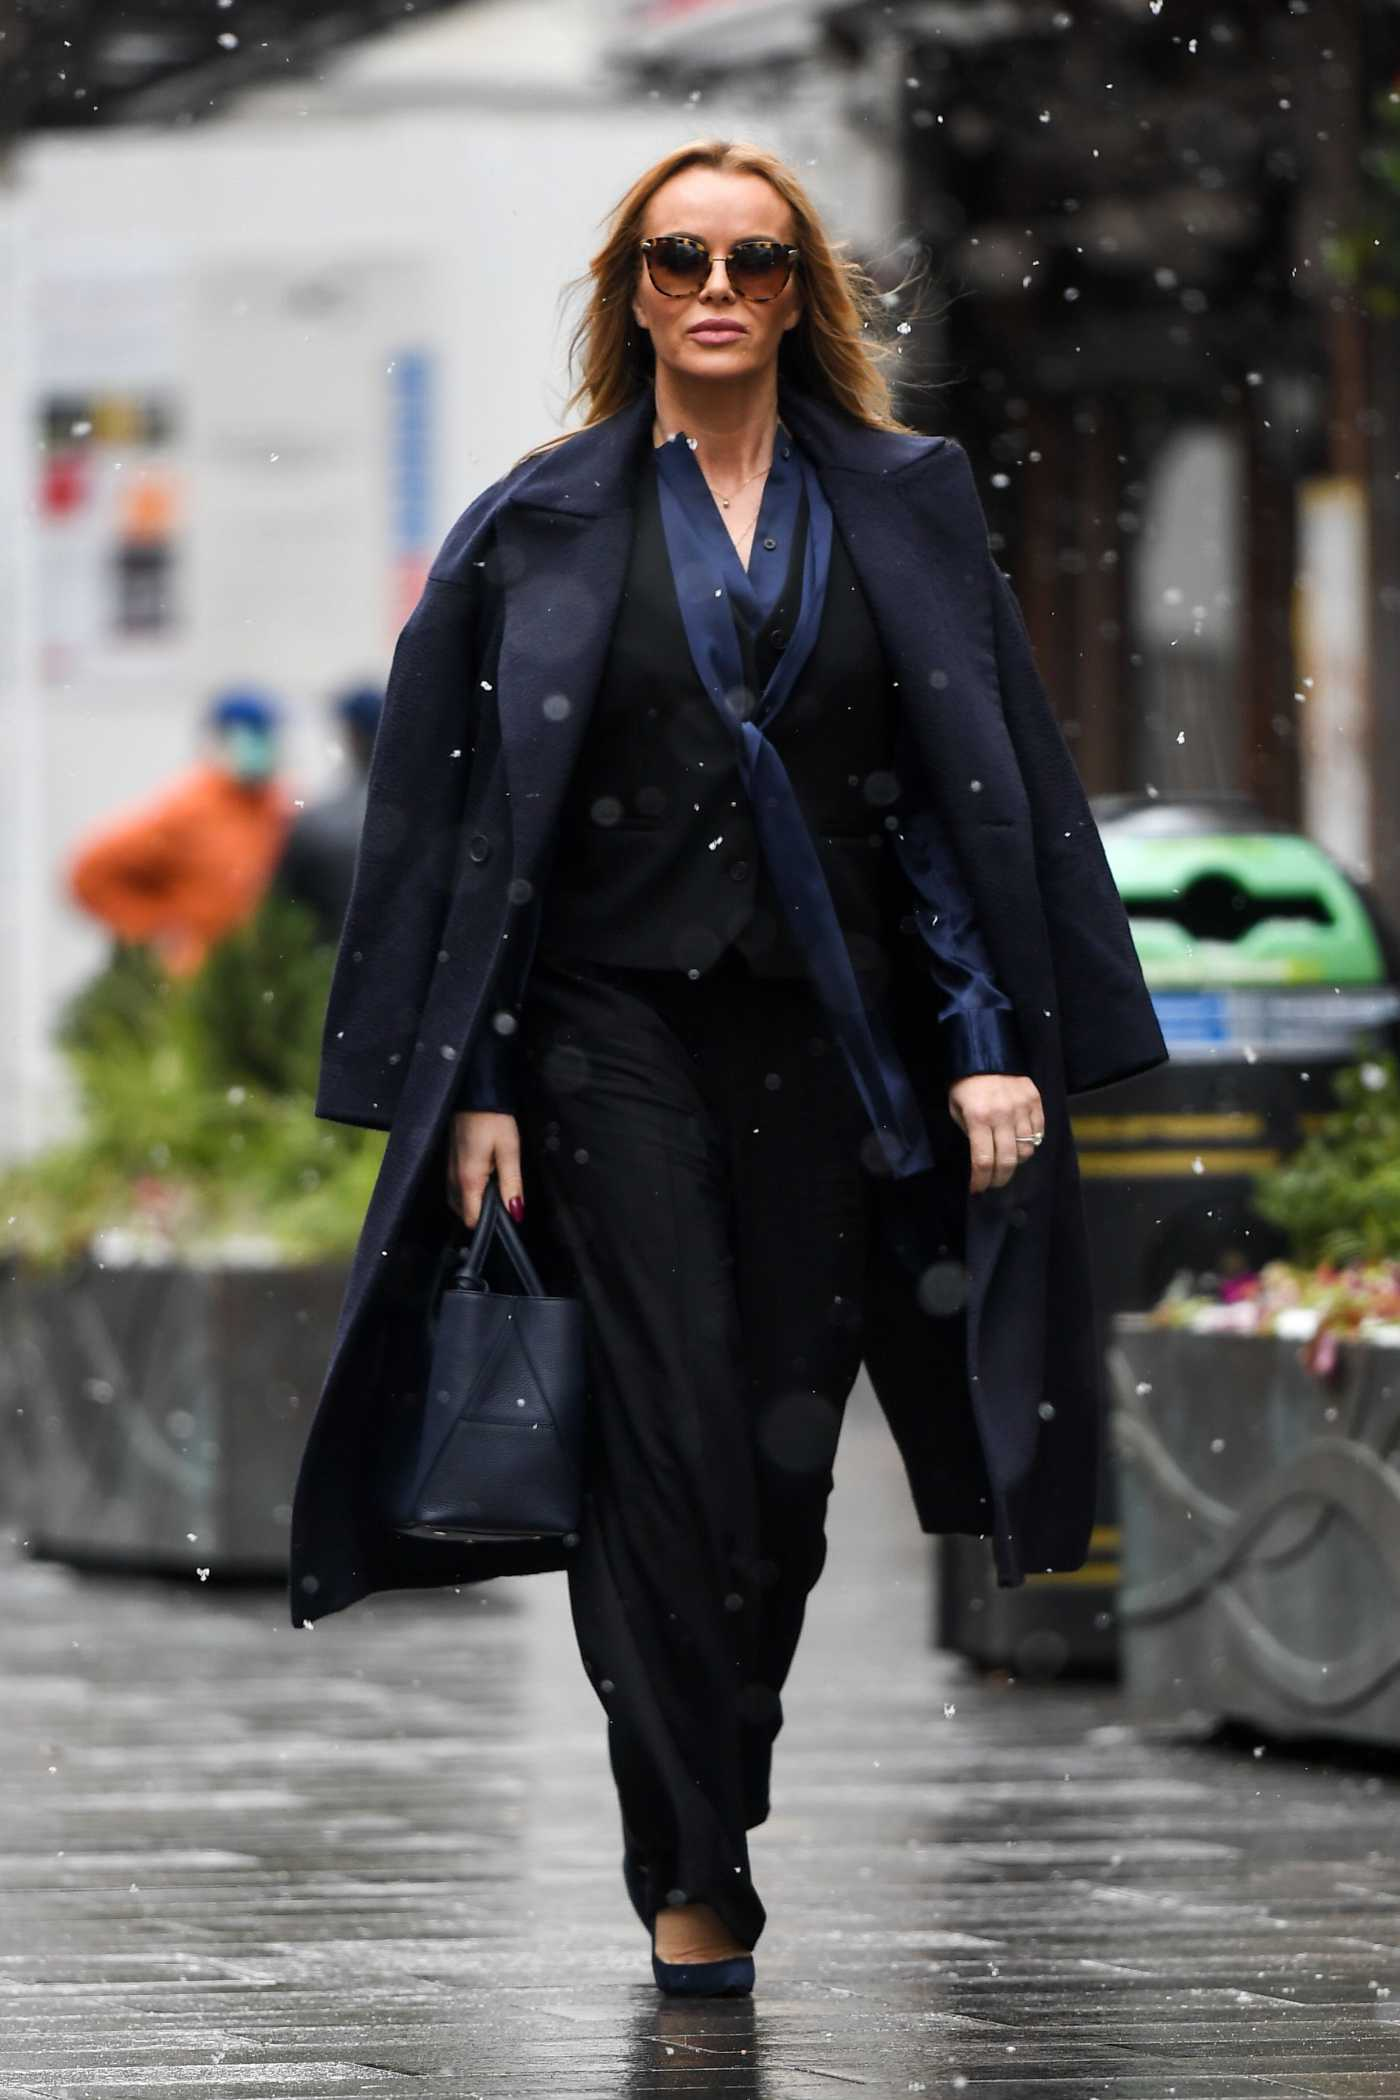 Amanda Holden in a Black Pantsuit Leaves the Global Radio Studios in London 02/09/2021